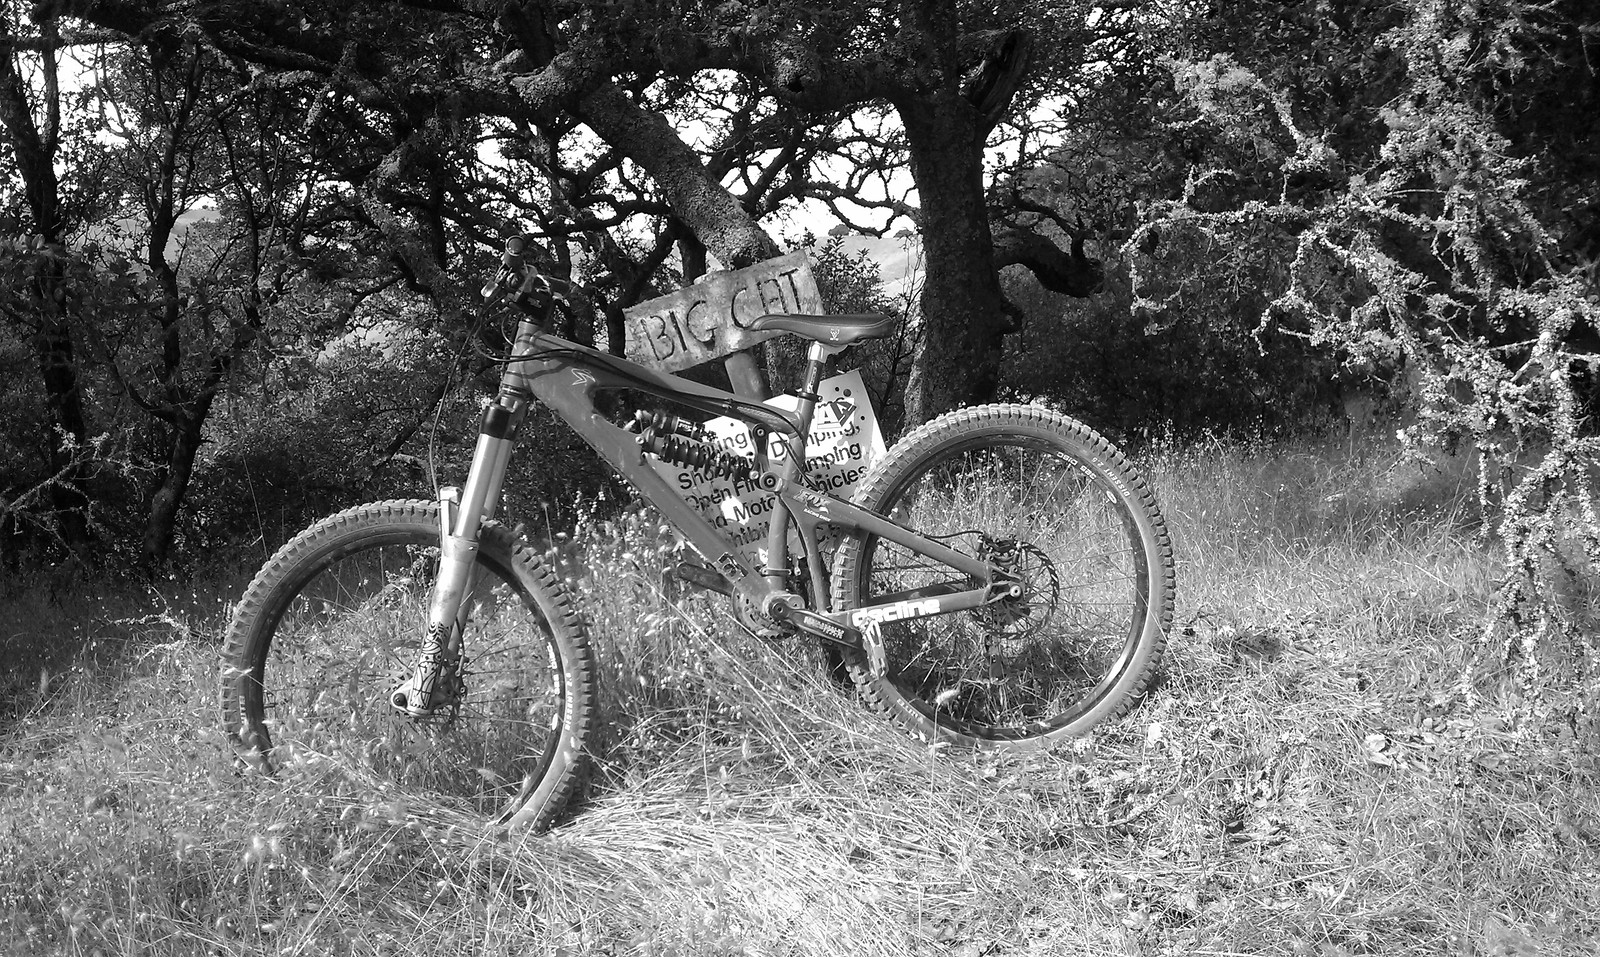 038 - supermachete - Mountain Biking Pictures - Vital MTB